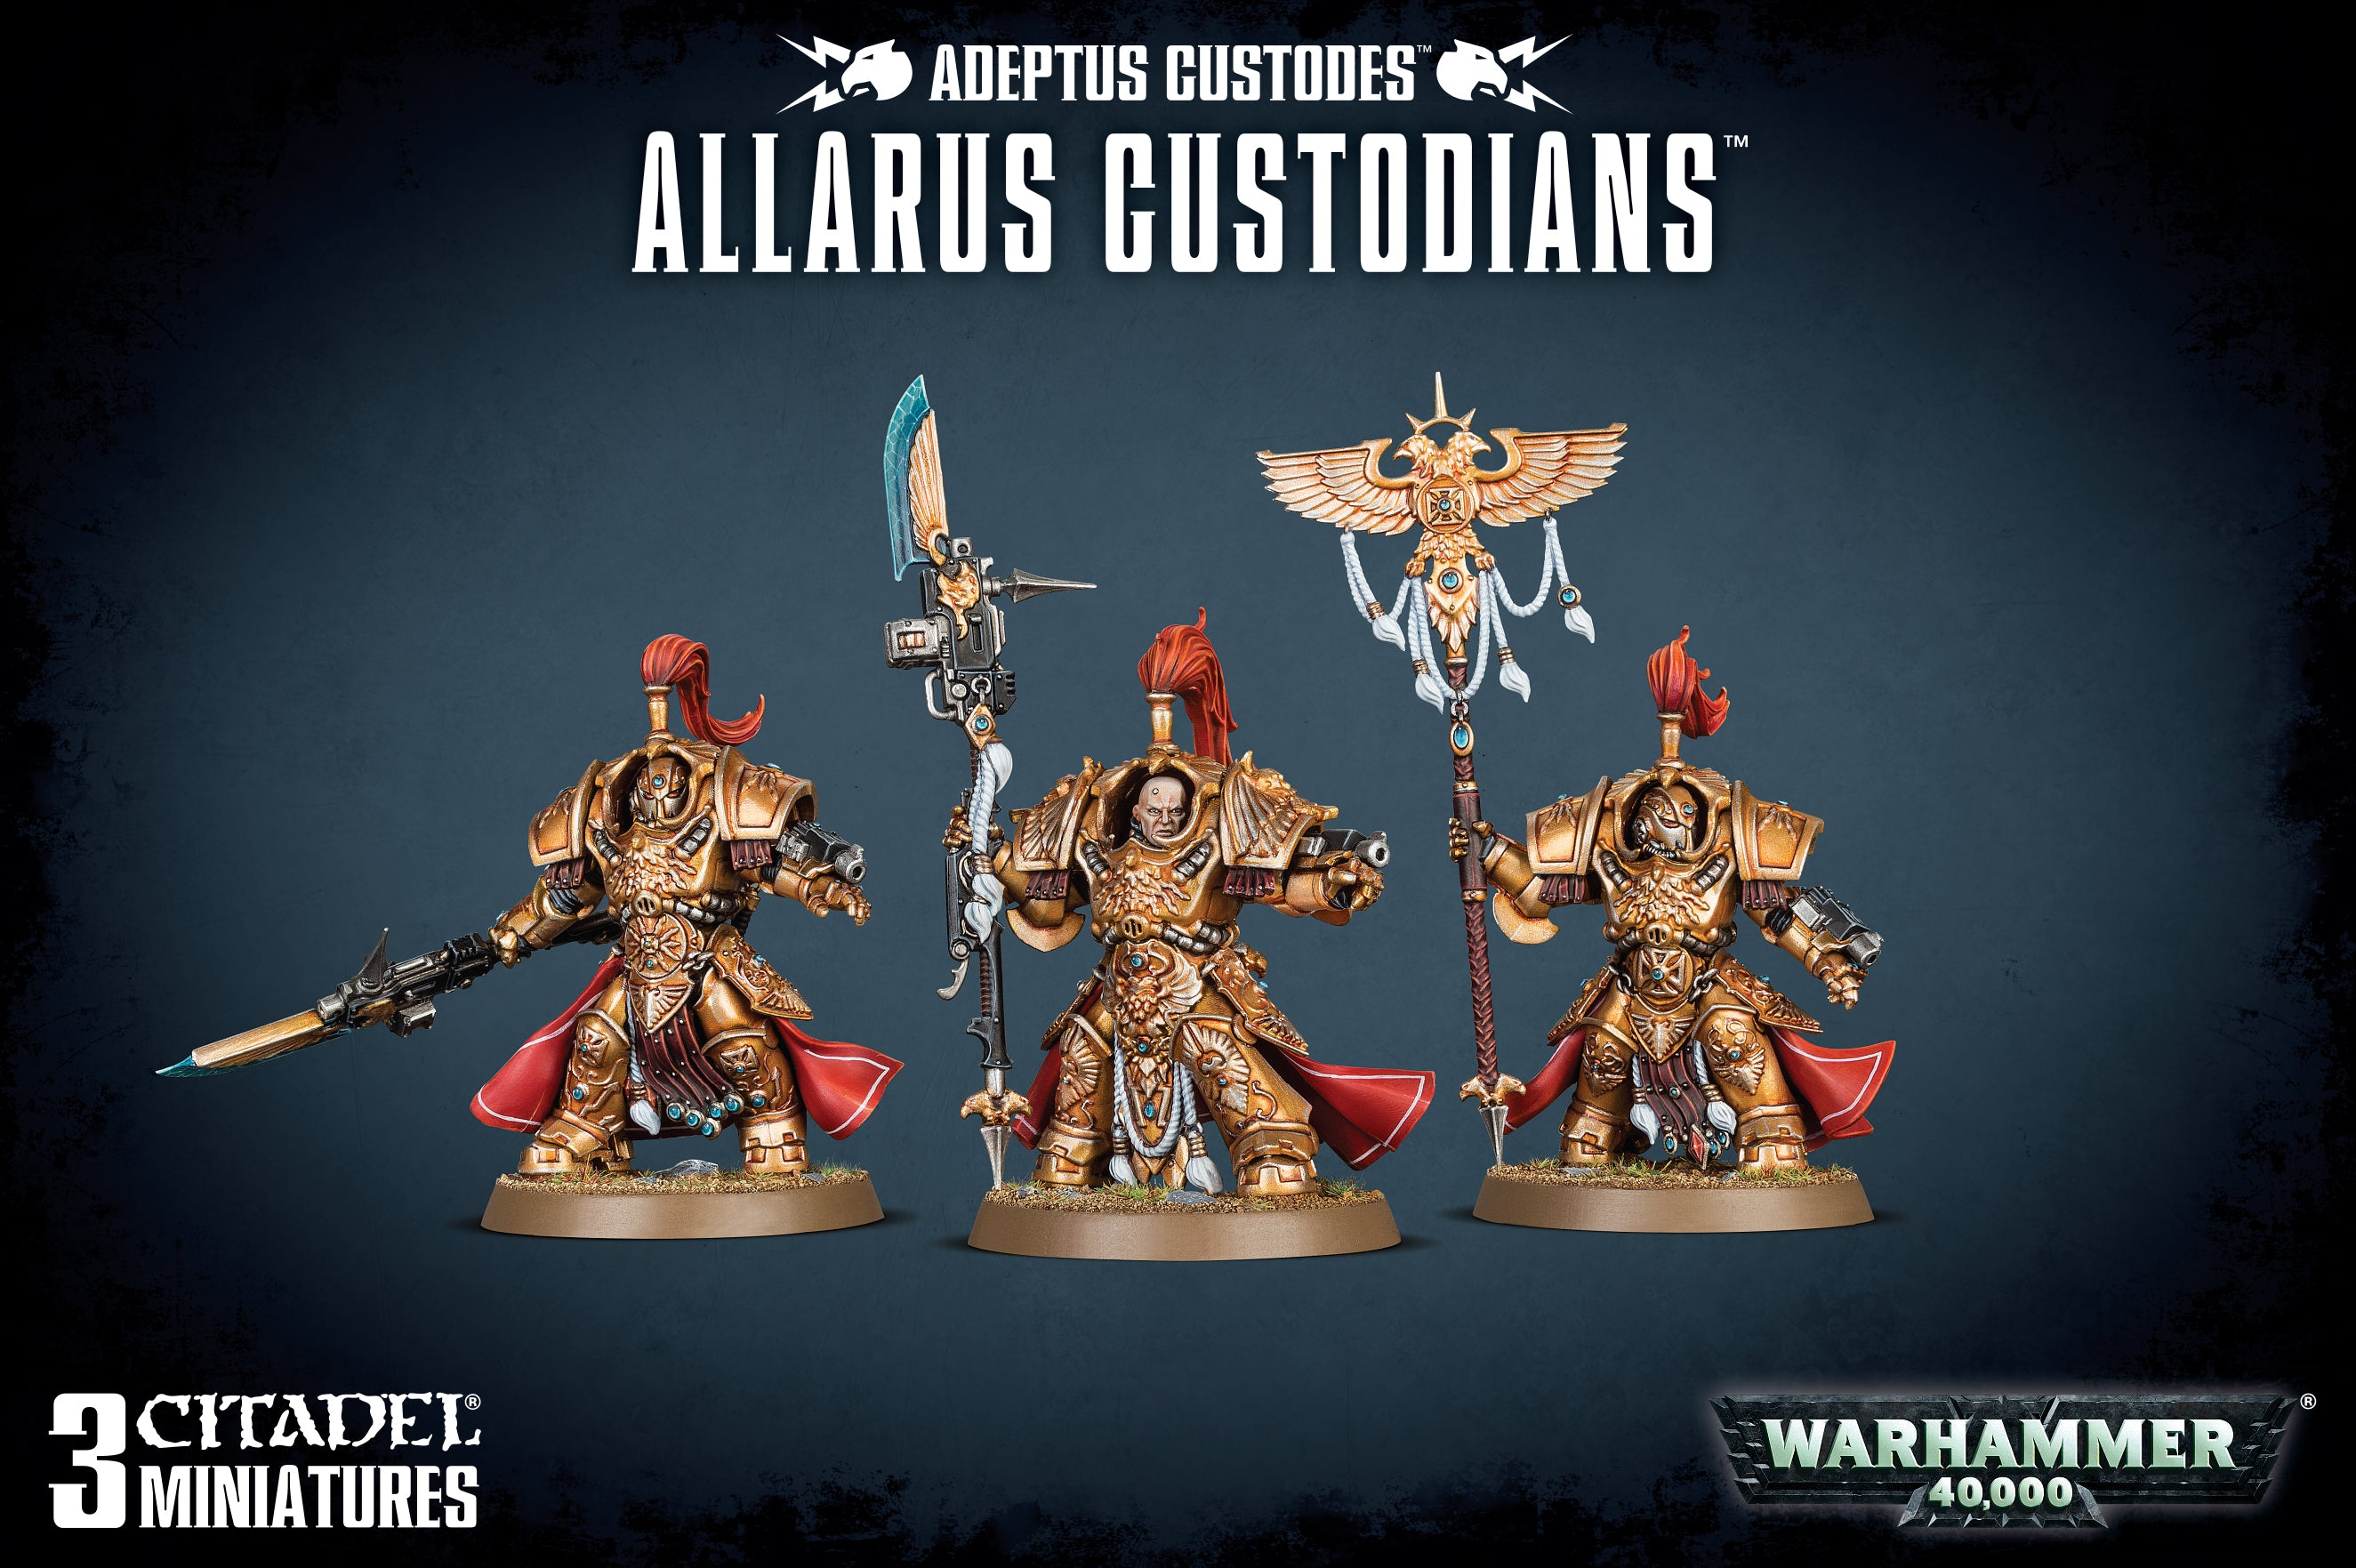 Allarus Custodians | Baxters Game Store